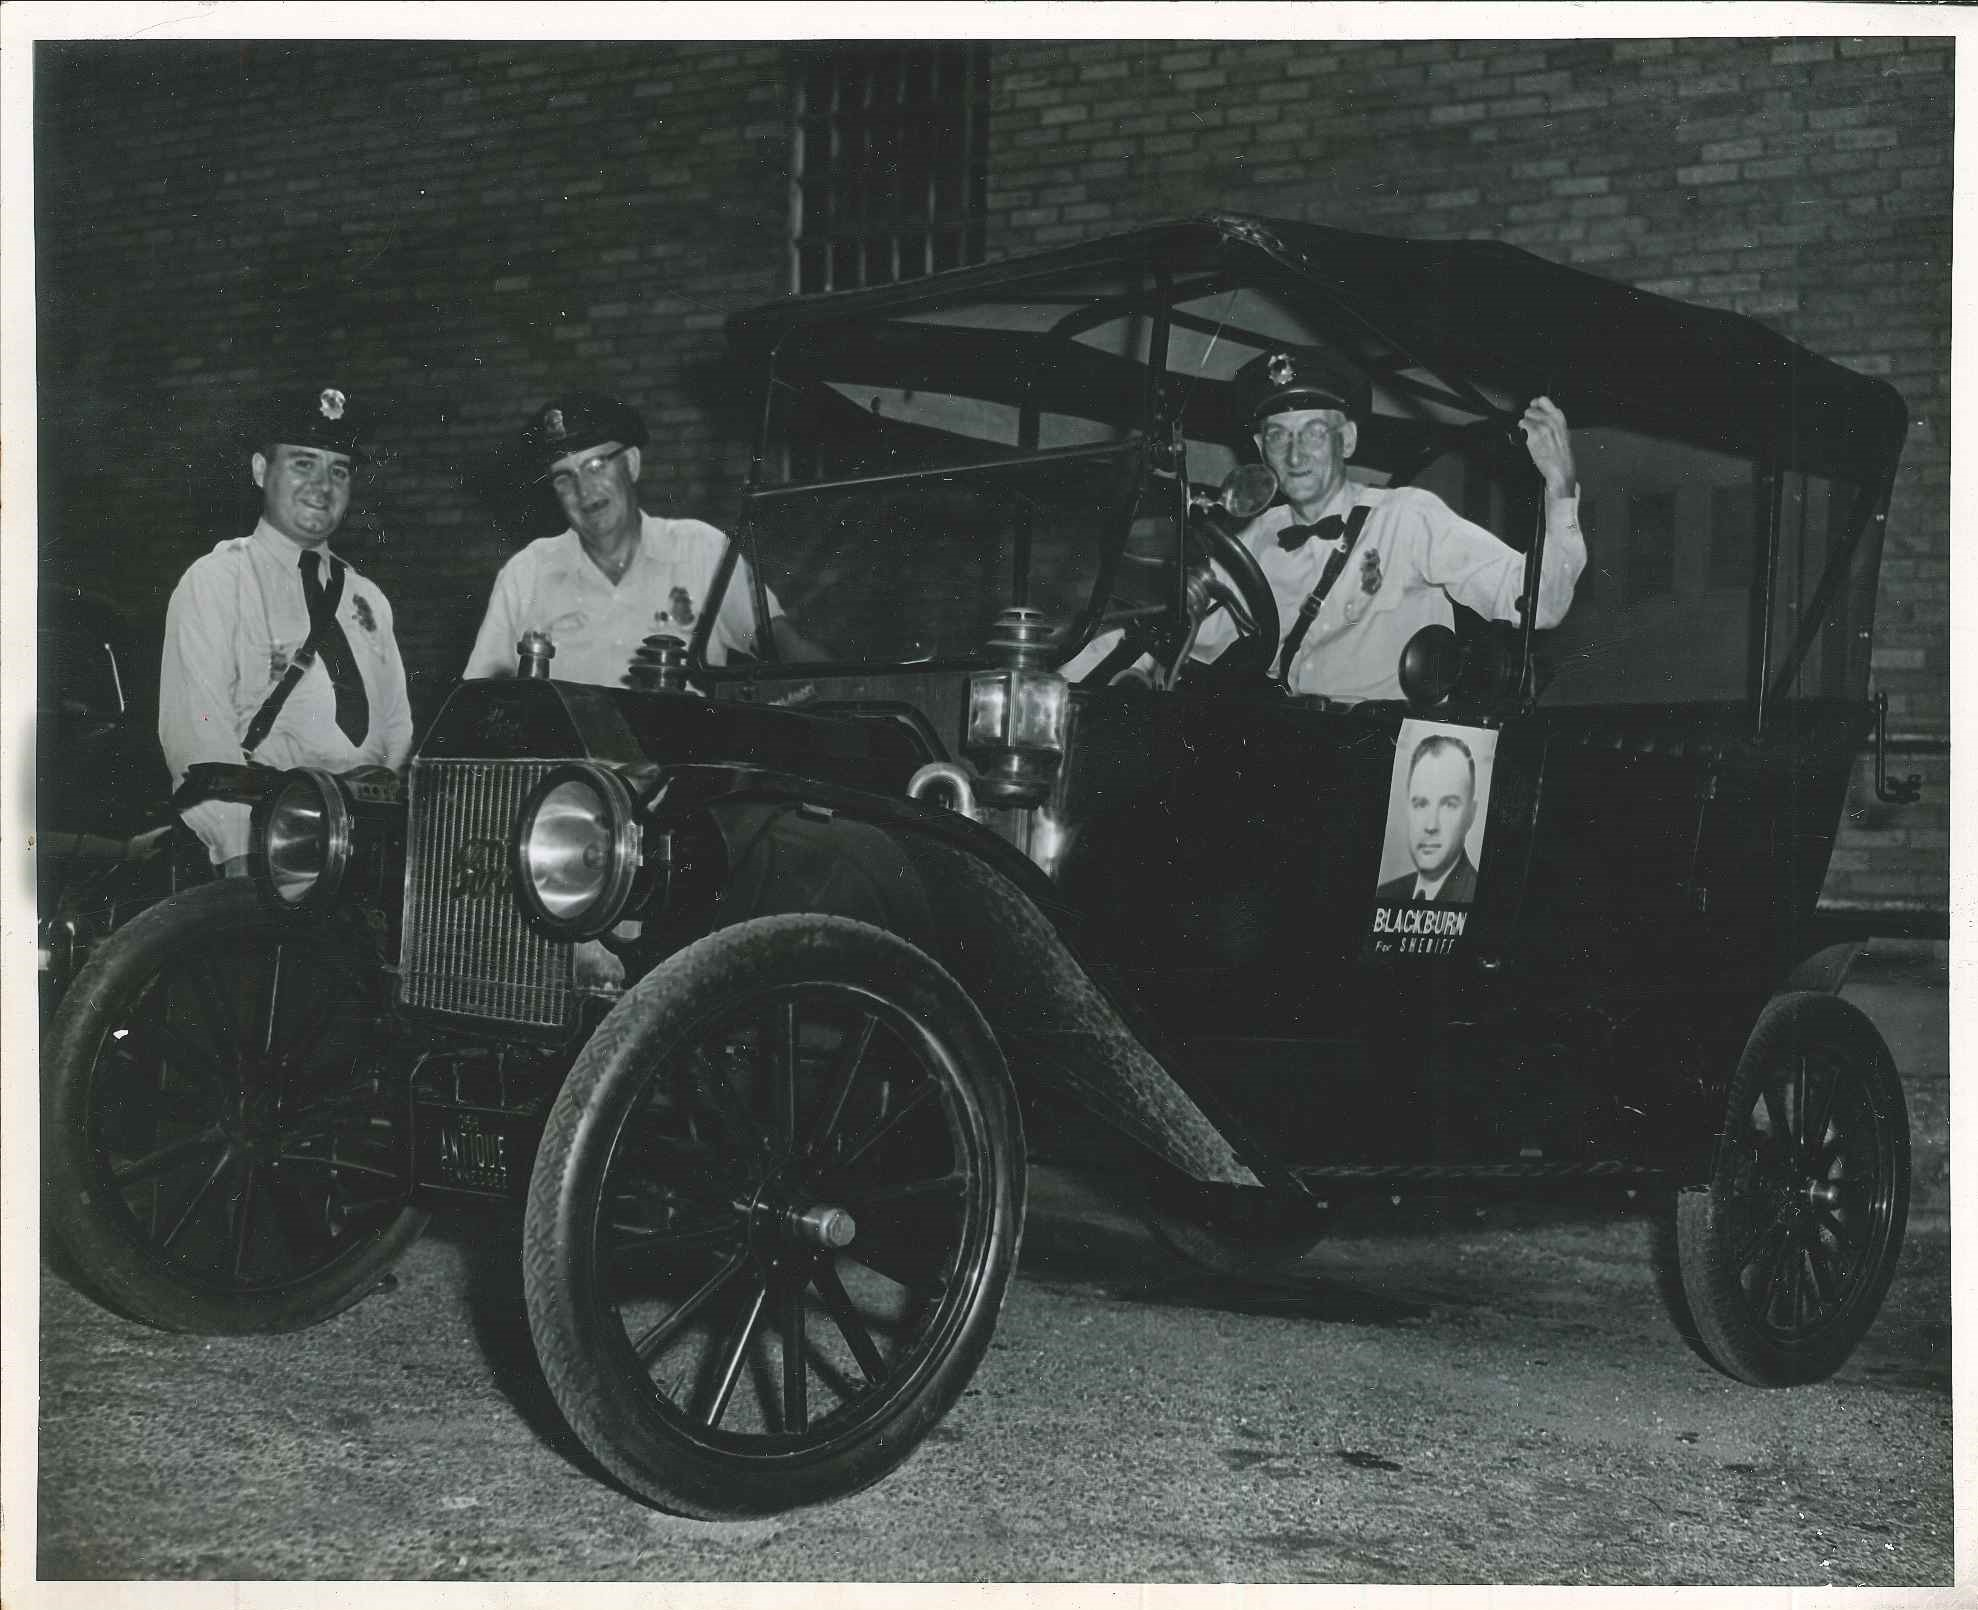 Black and white photo of three officers in and near old style motor vehicle